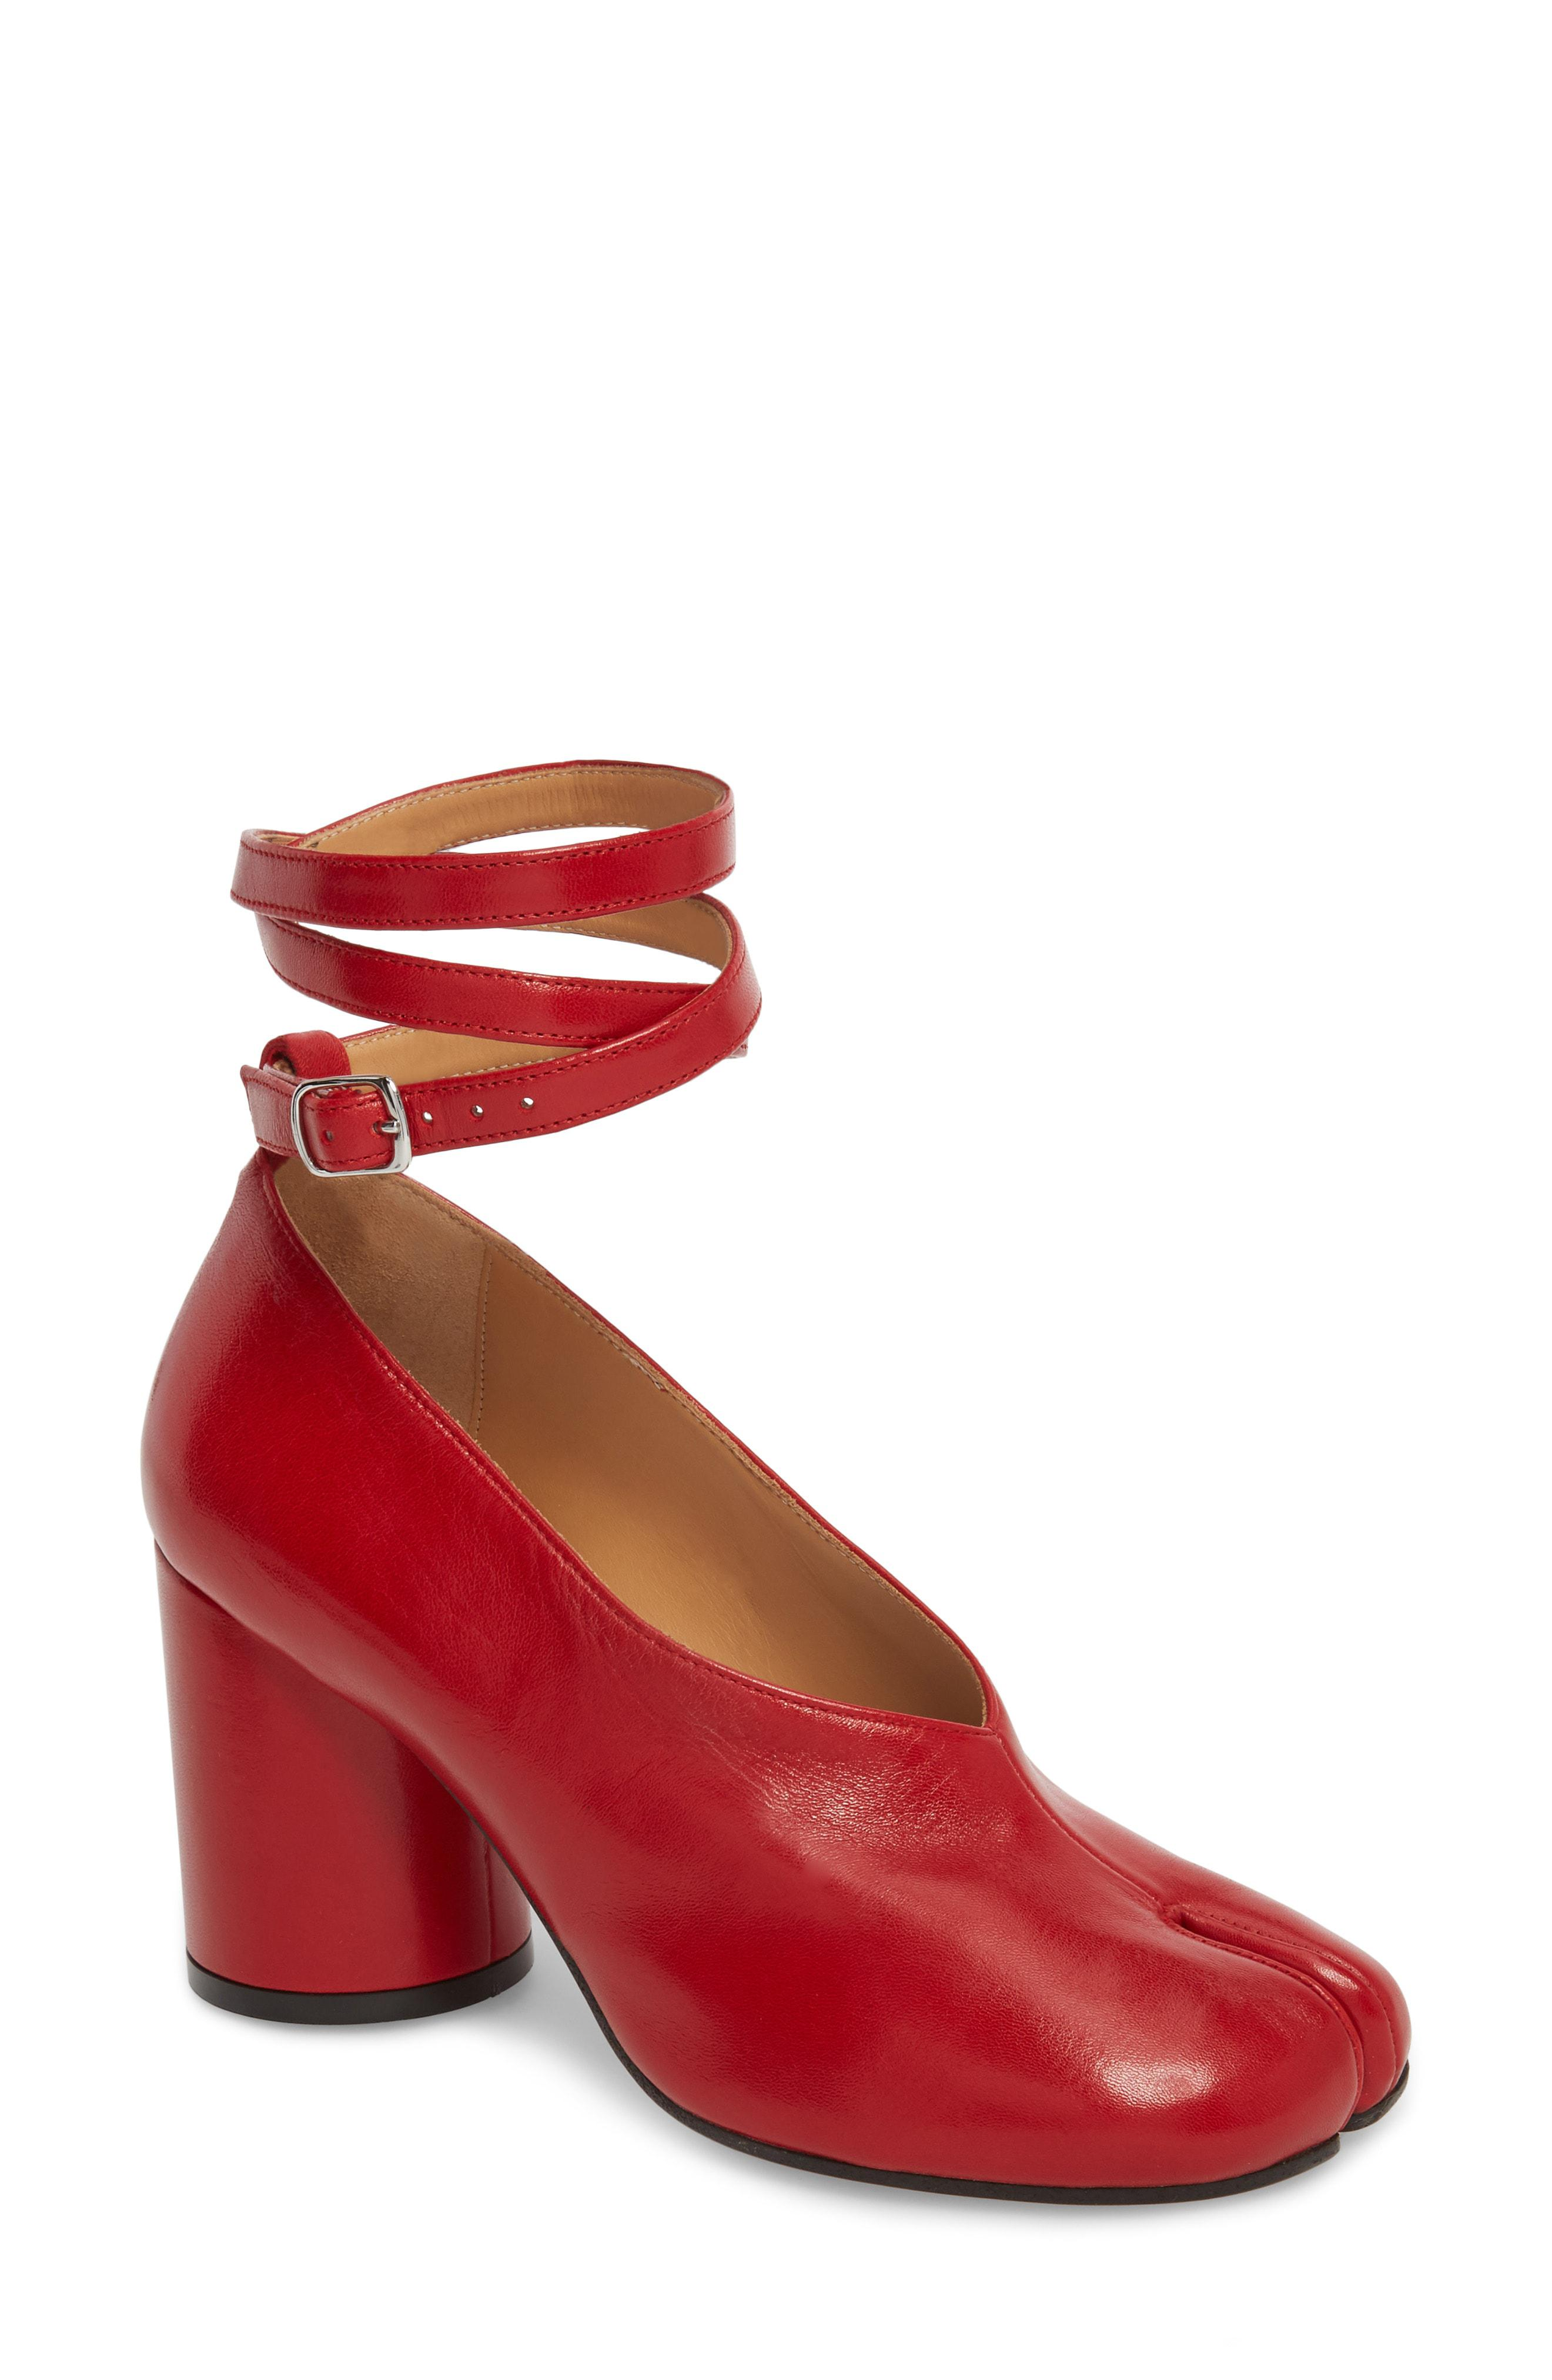 6303bec71c2 Lyst - Maison Margiela Tabi Ankle Strap Pump in Red